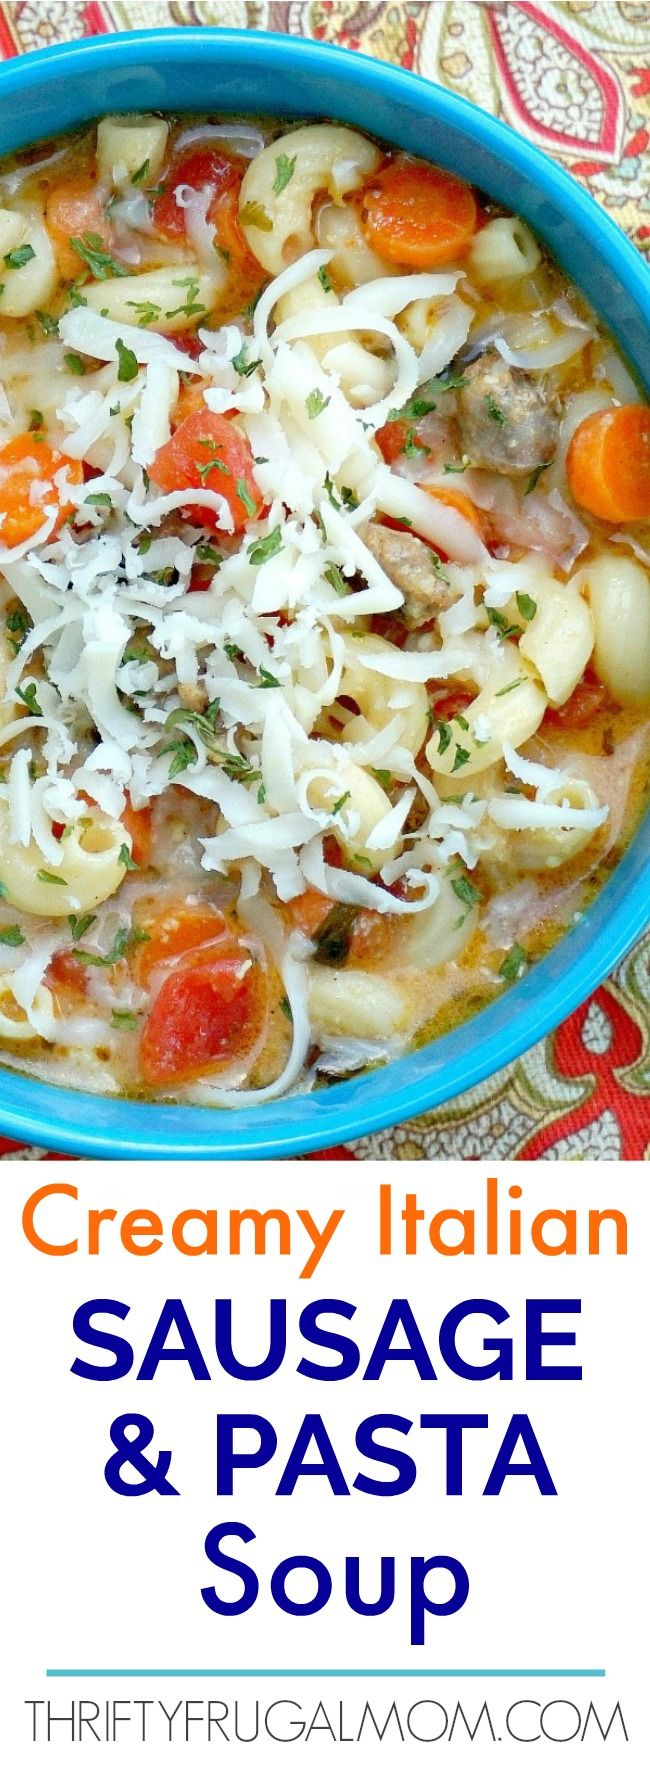 This Creamy Italian Sausage and Pasta Soup is absolutely amazing!  It's loaded with flavor and so hearty and delicious.  The perfect family friendly meal!   via @FrugalMomL